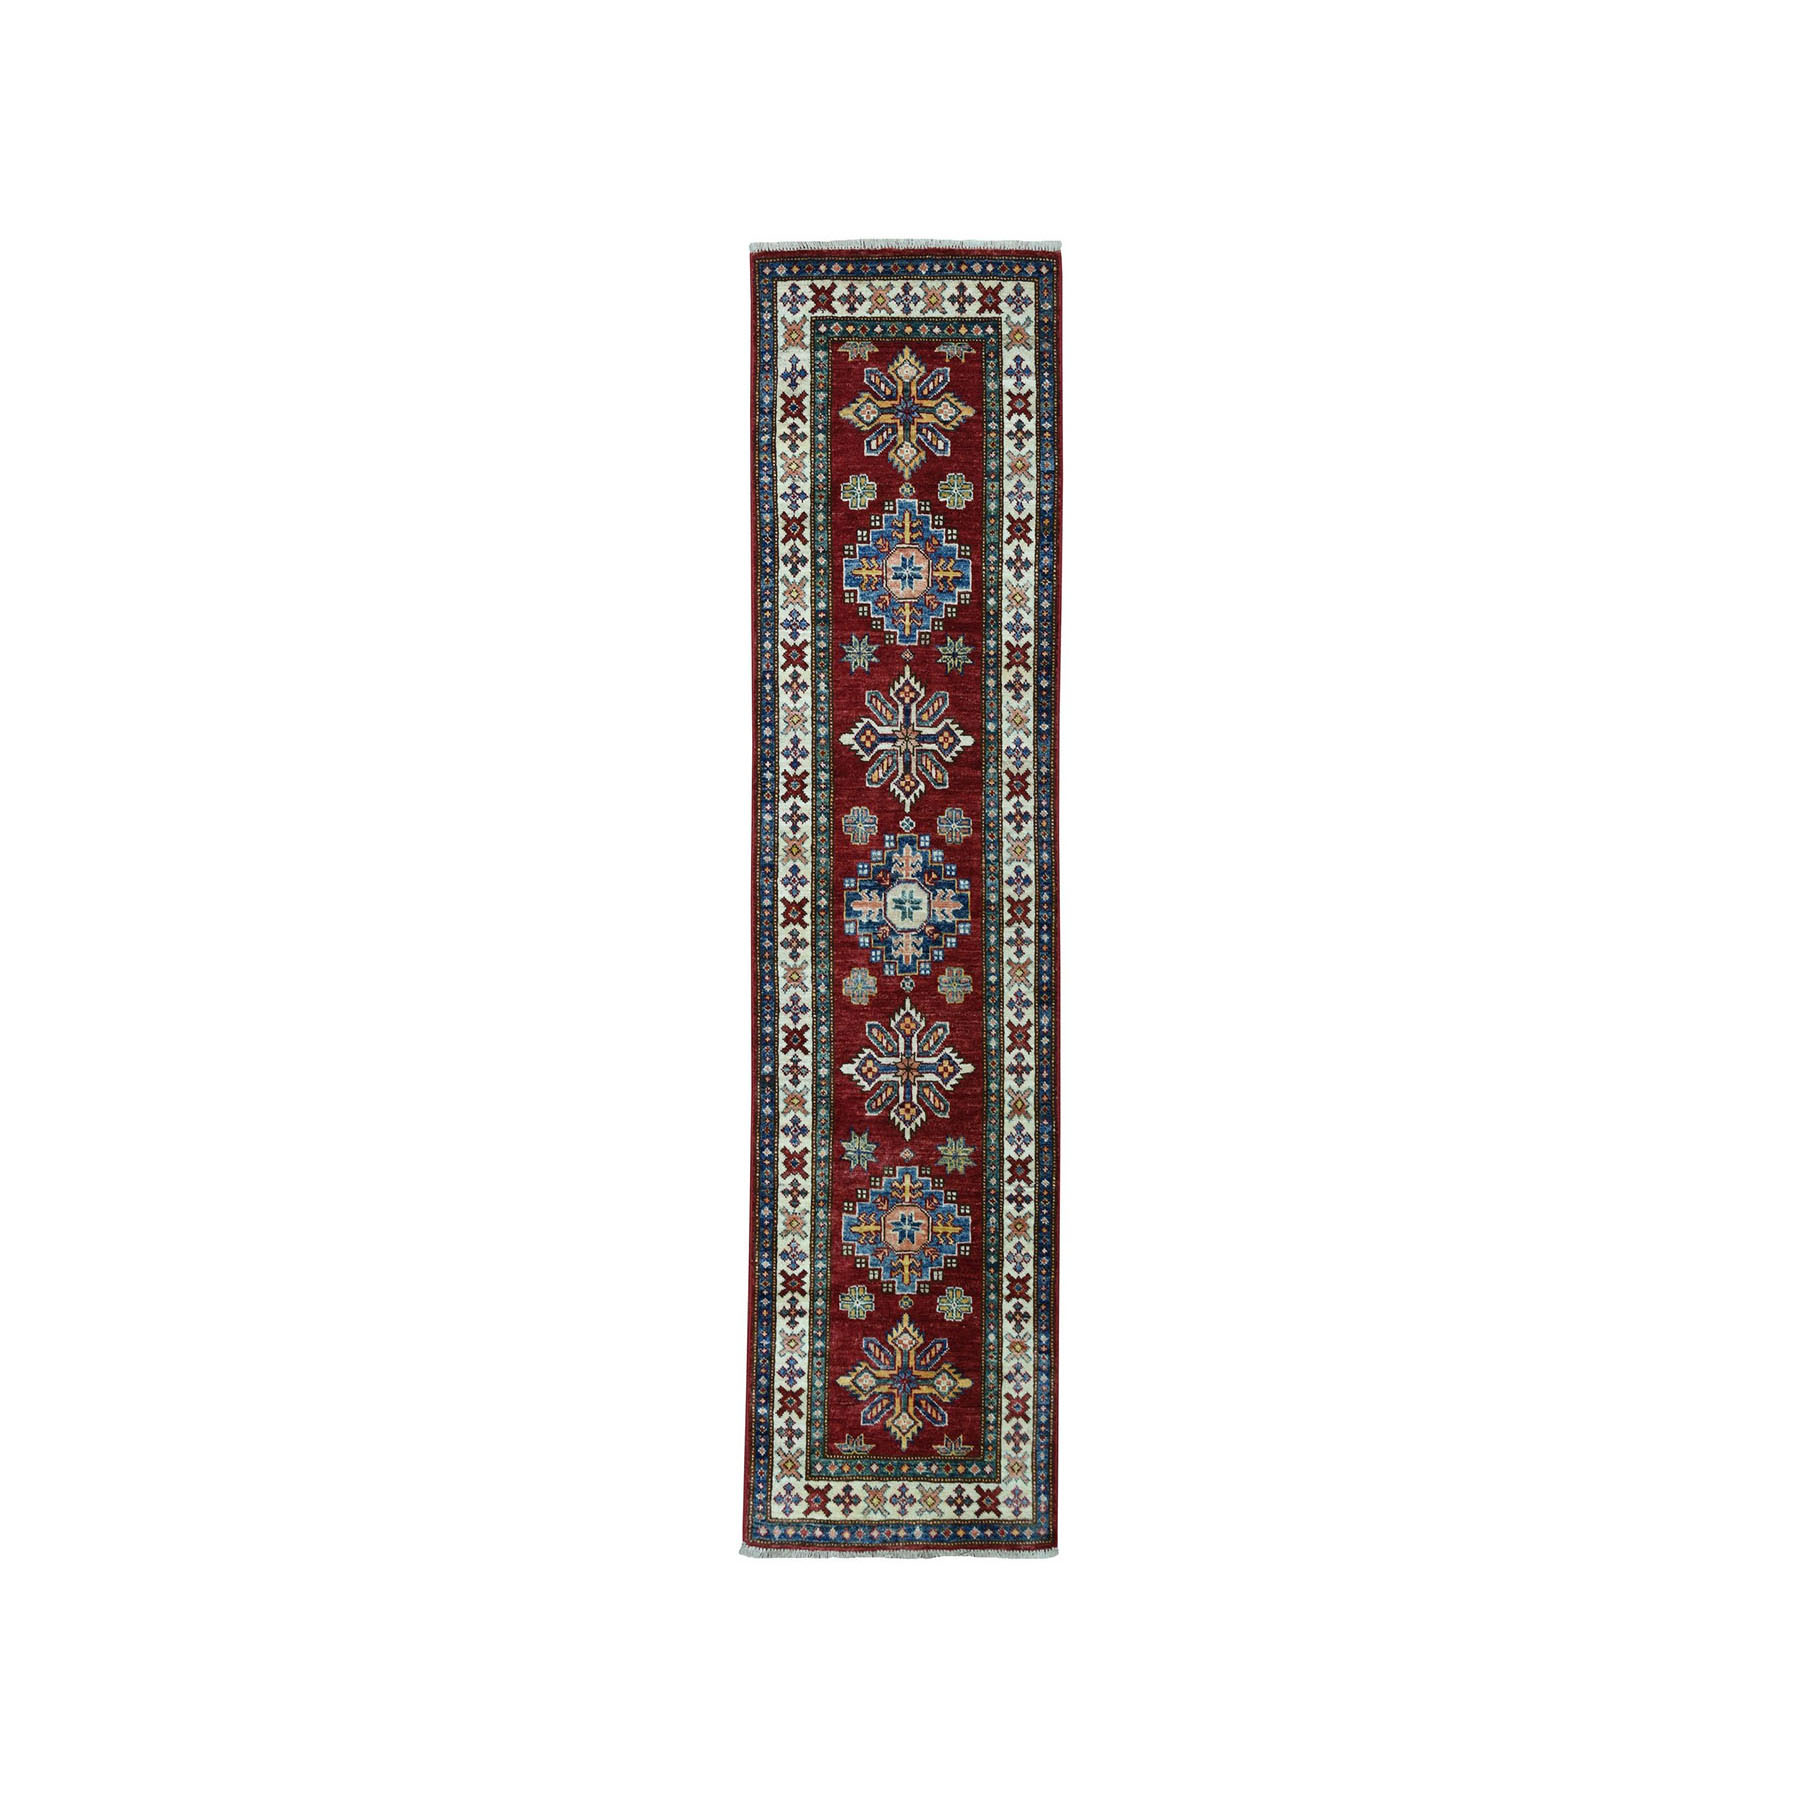 "2'x6'2"" Red Super Kazak Pure Wool Geometric Design Hand-Knotted Runner Oriental Rug"